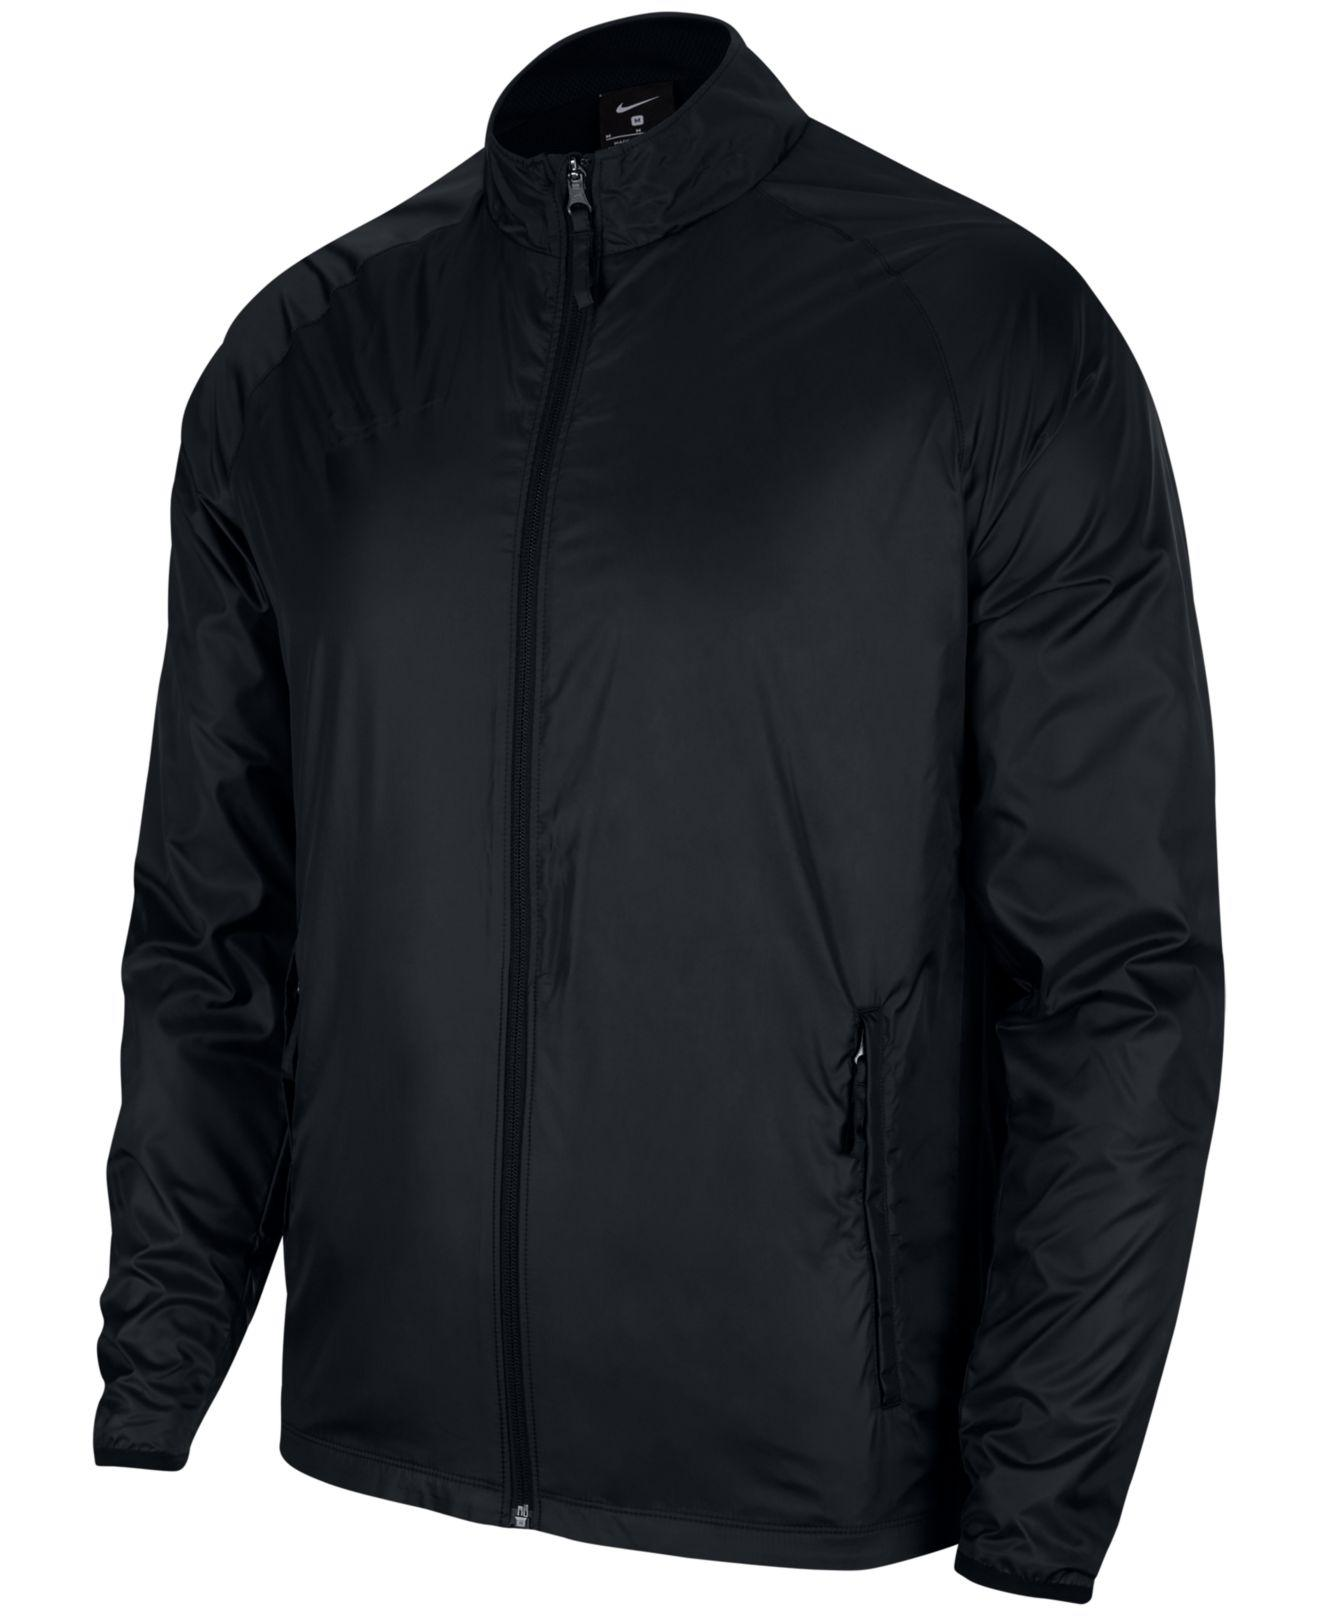 a38bcd0a06 Lyst - Nike Academy Soccer Jacket in Black for Men